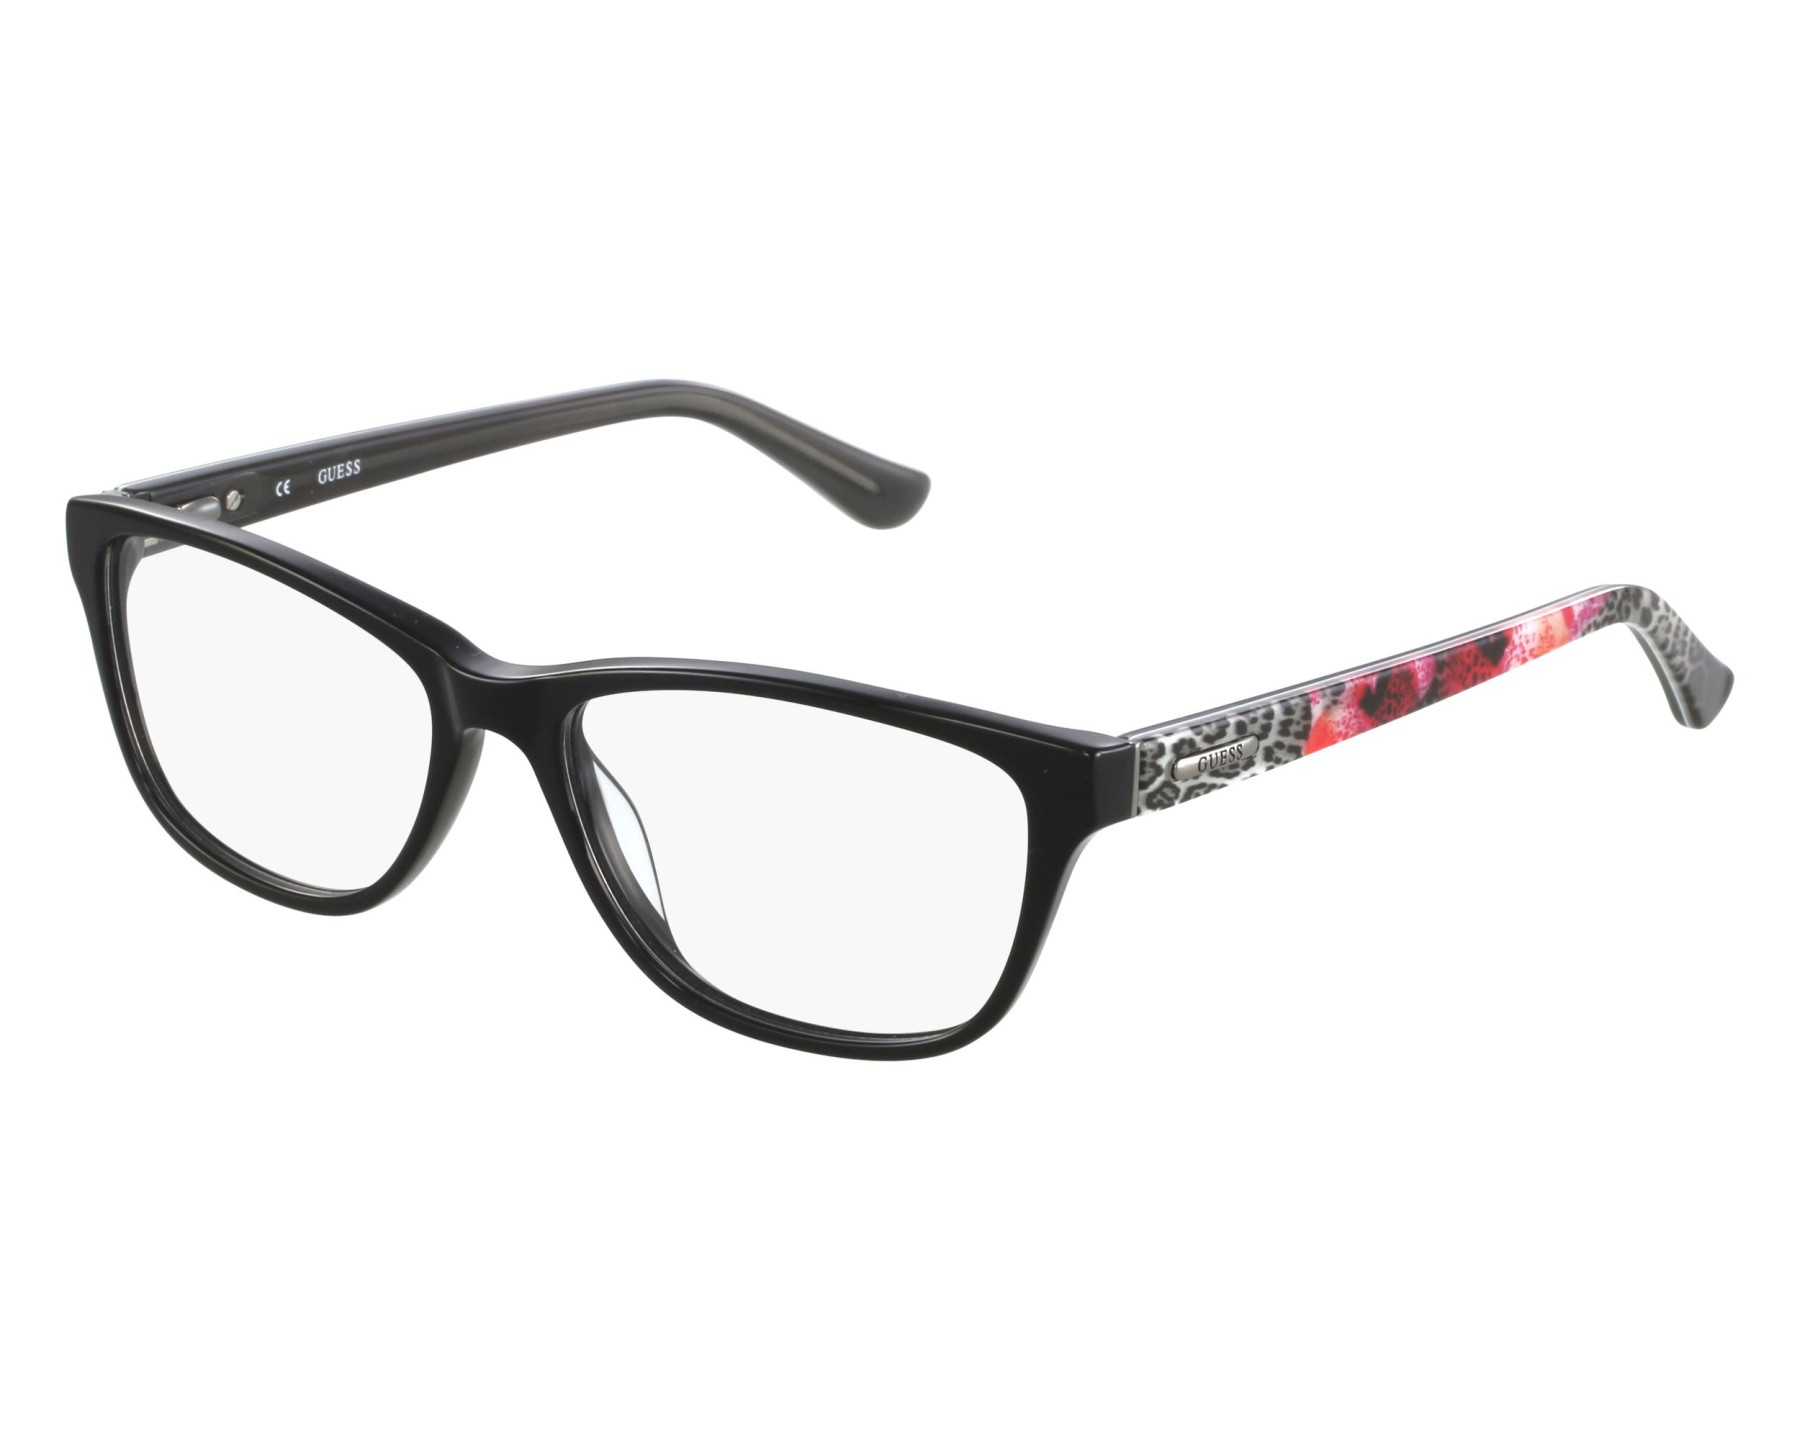 4488f03ef4 eyeglasses Guess GU-2513 001 - Black Mix front view